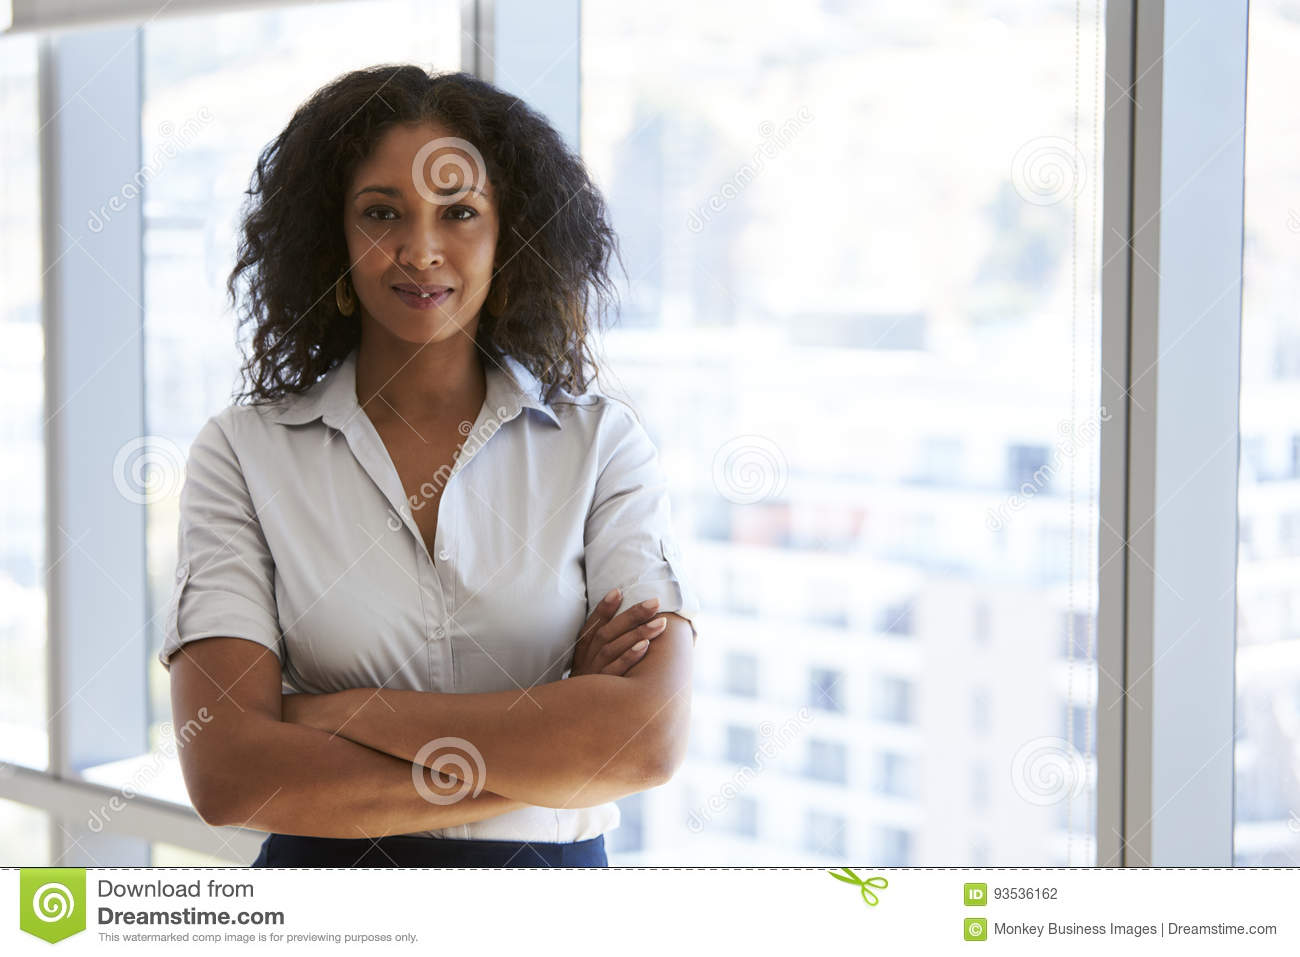 Download Portrait Of Businesswoman Standing By Window In Office Stock Photo - Image of business, confident: 93536162